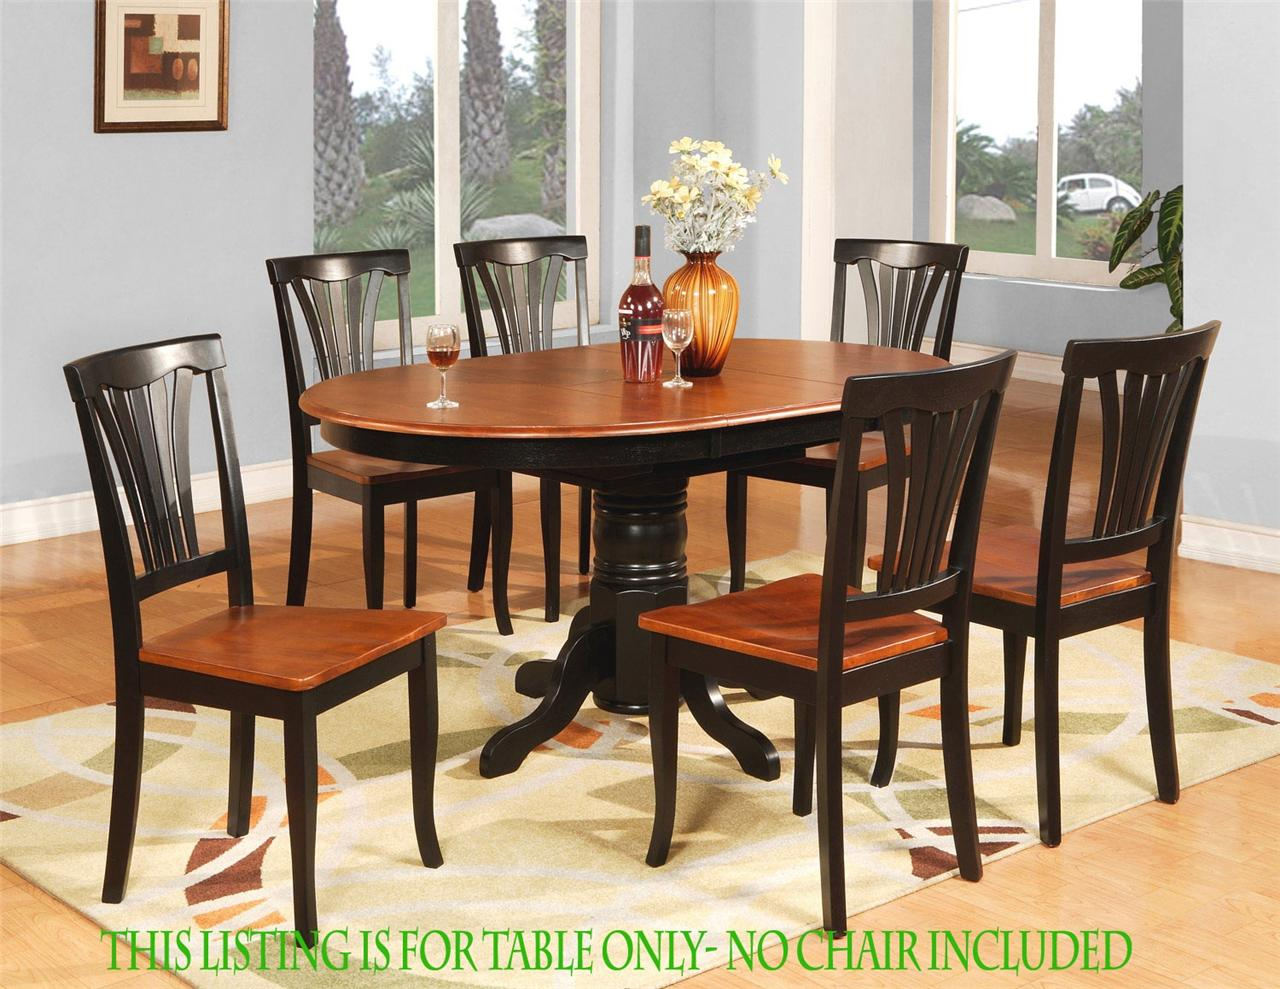 Oval dinette kitchen dining room table only 42 x 60 with for 3 leaf dining room tables